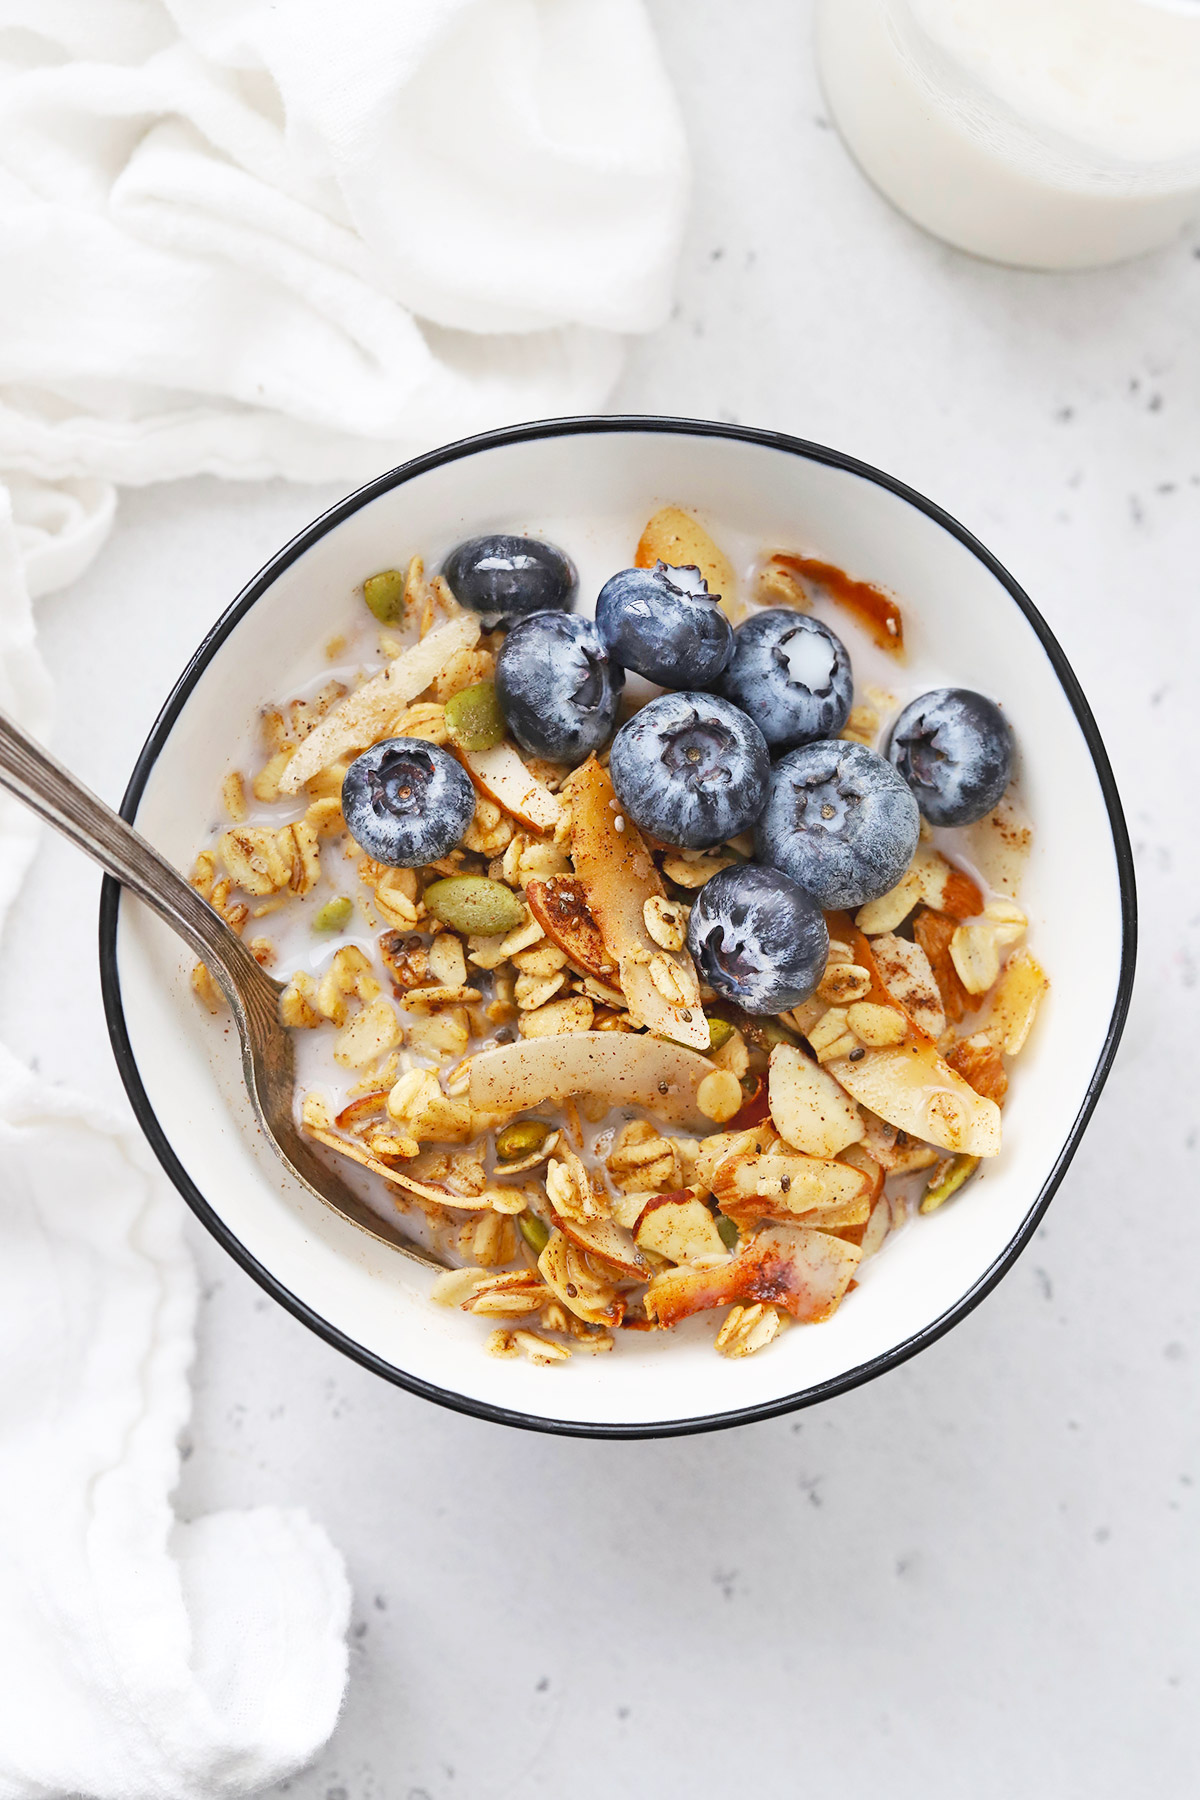 Bowl of Gluten Free Warm Spiced Granola with almond milk and blueberries